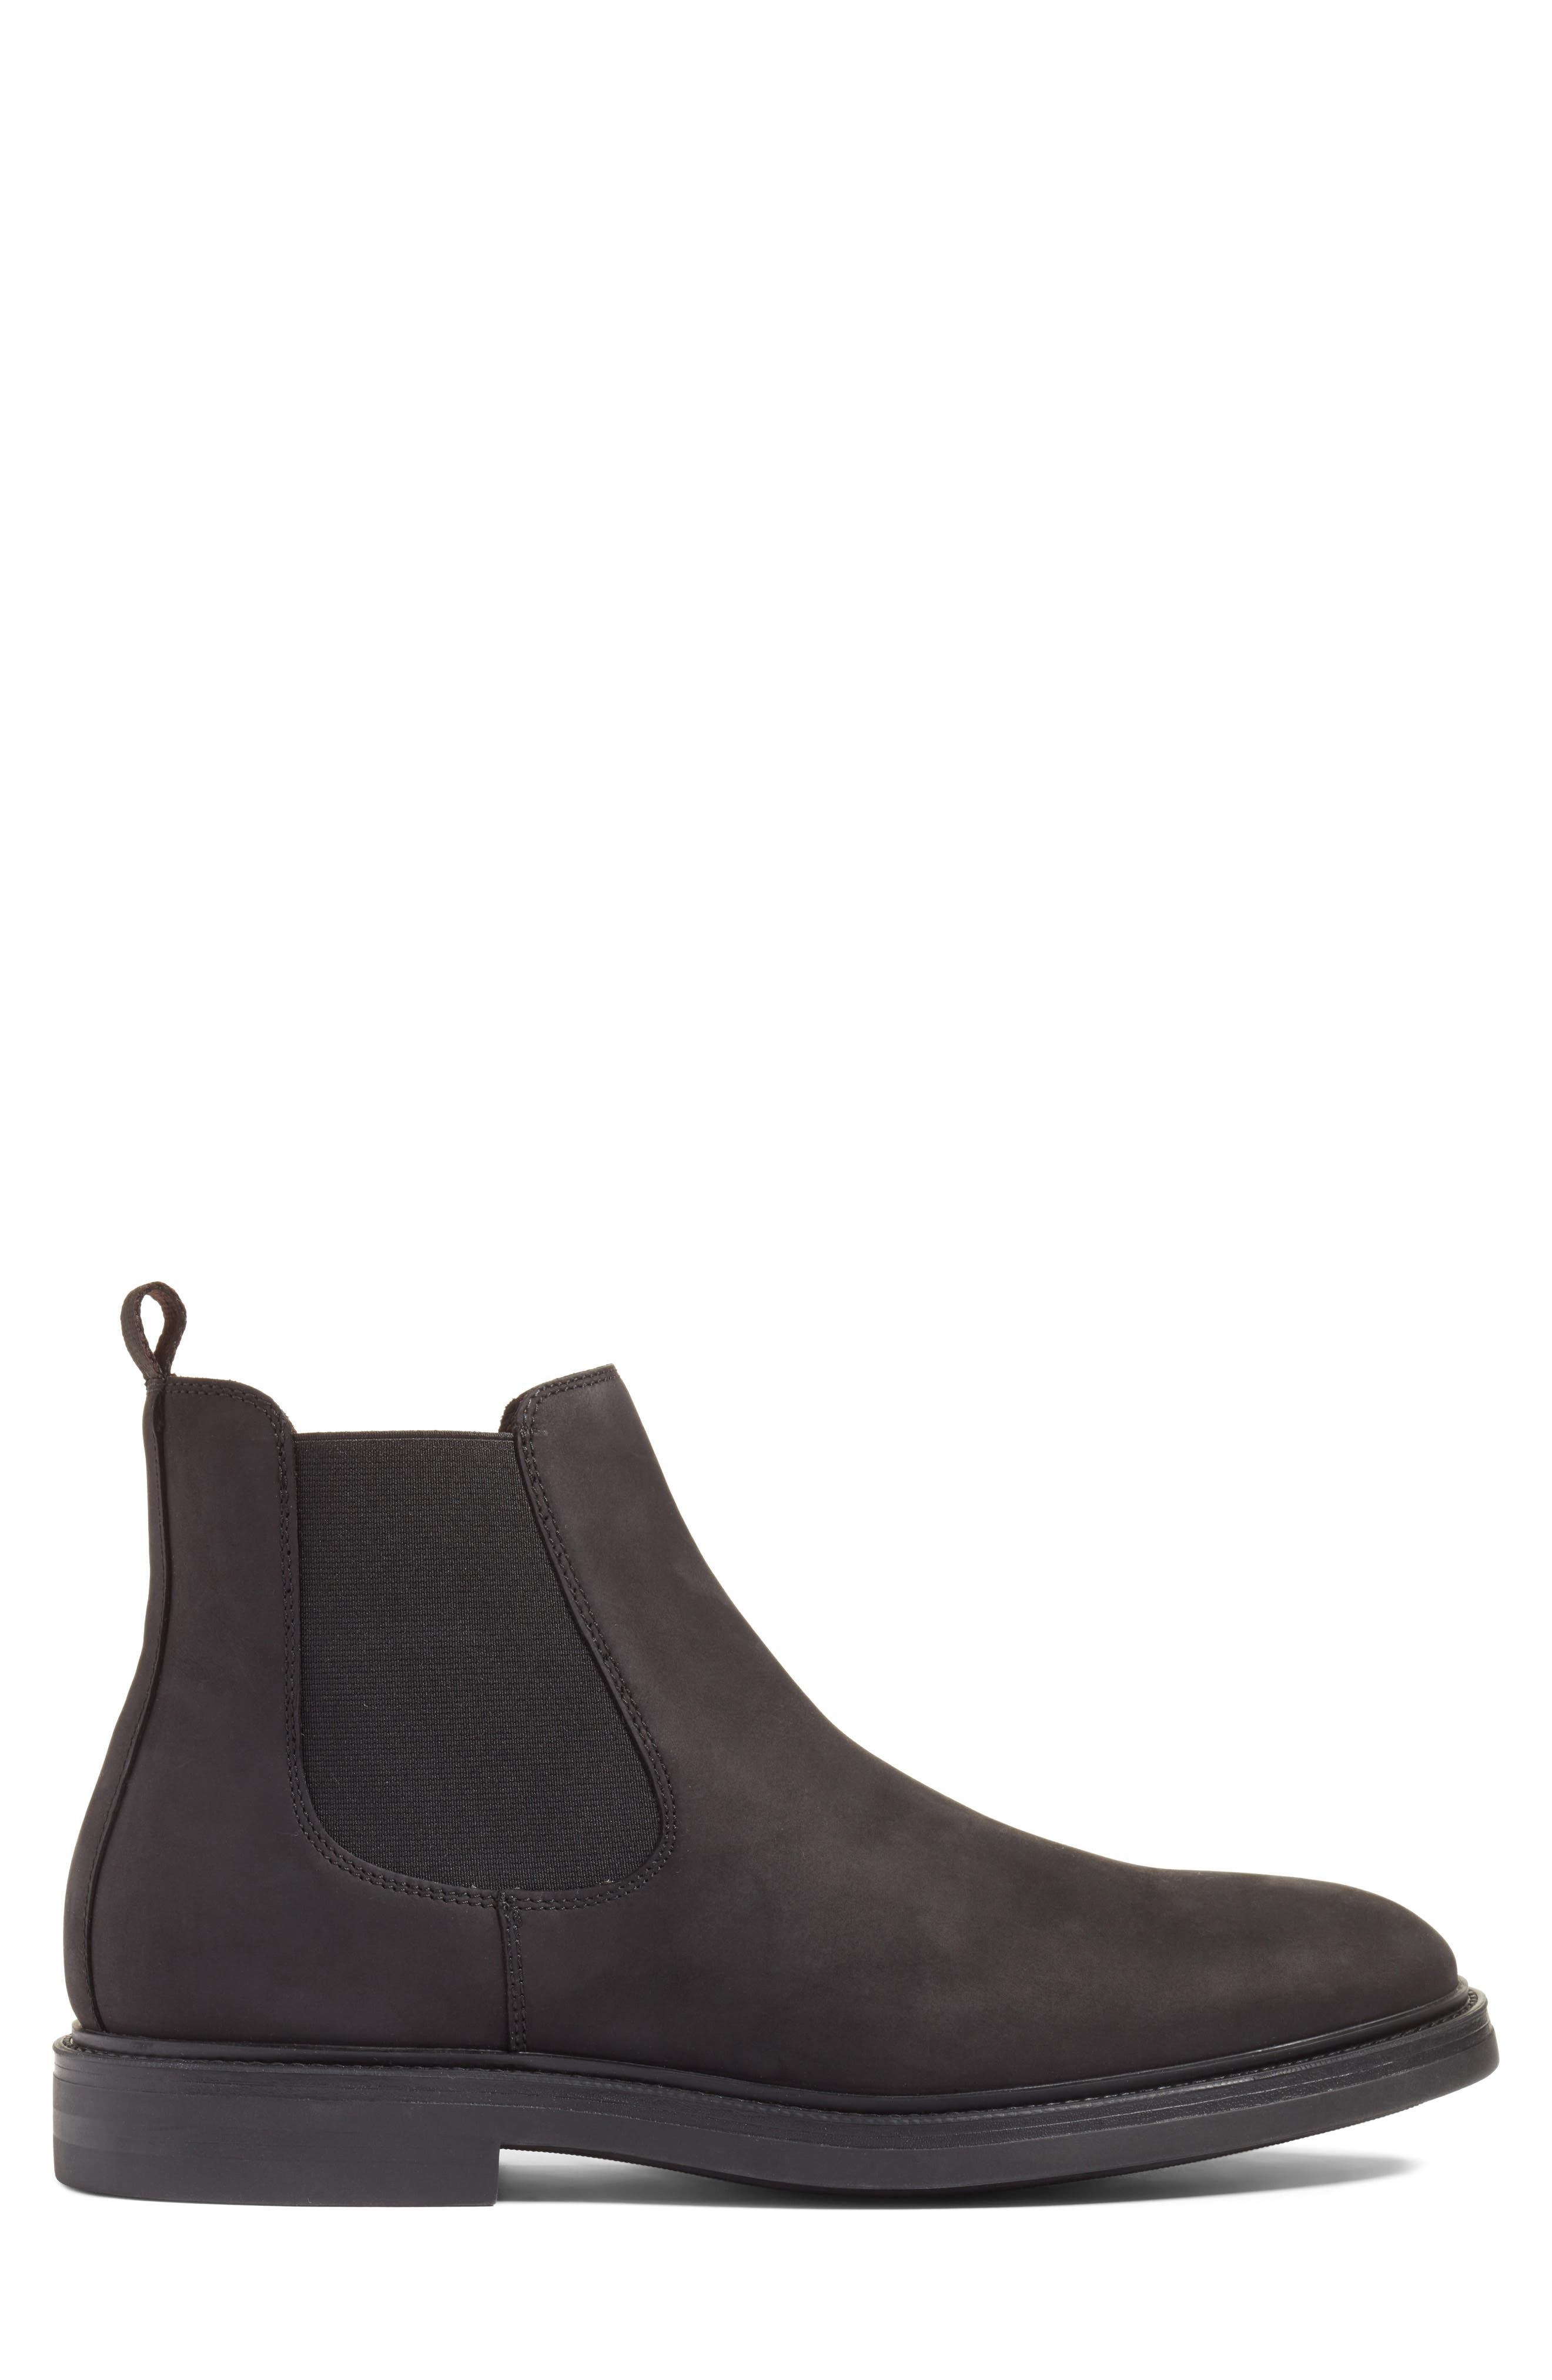 Chelsea Boot,                             Alternate thumbnail 3, color,                             002